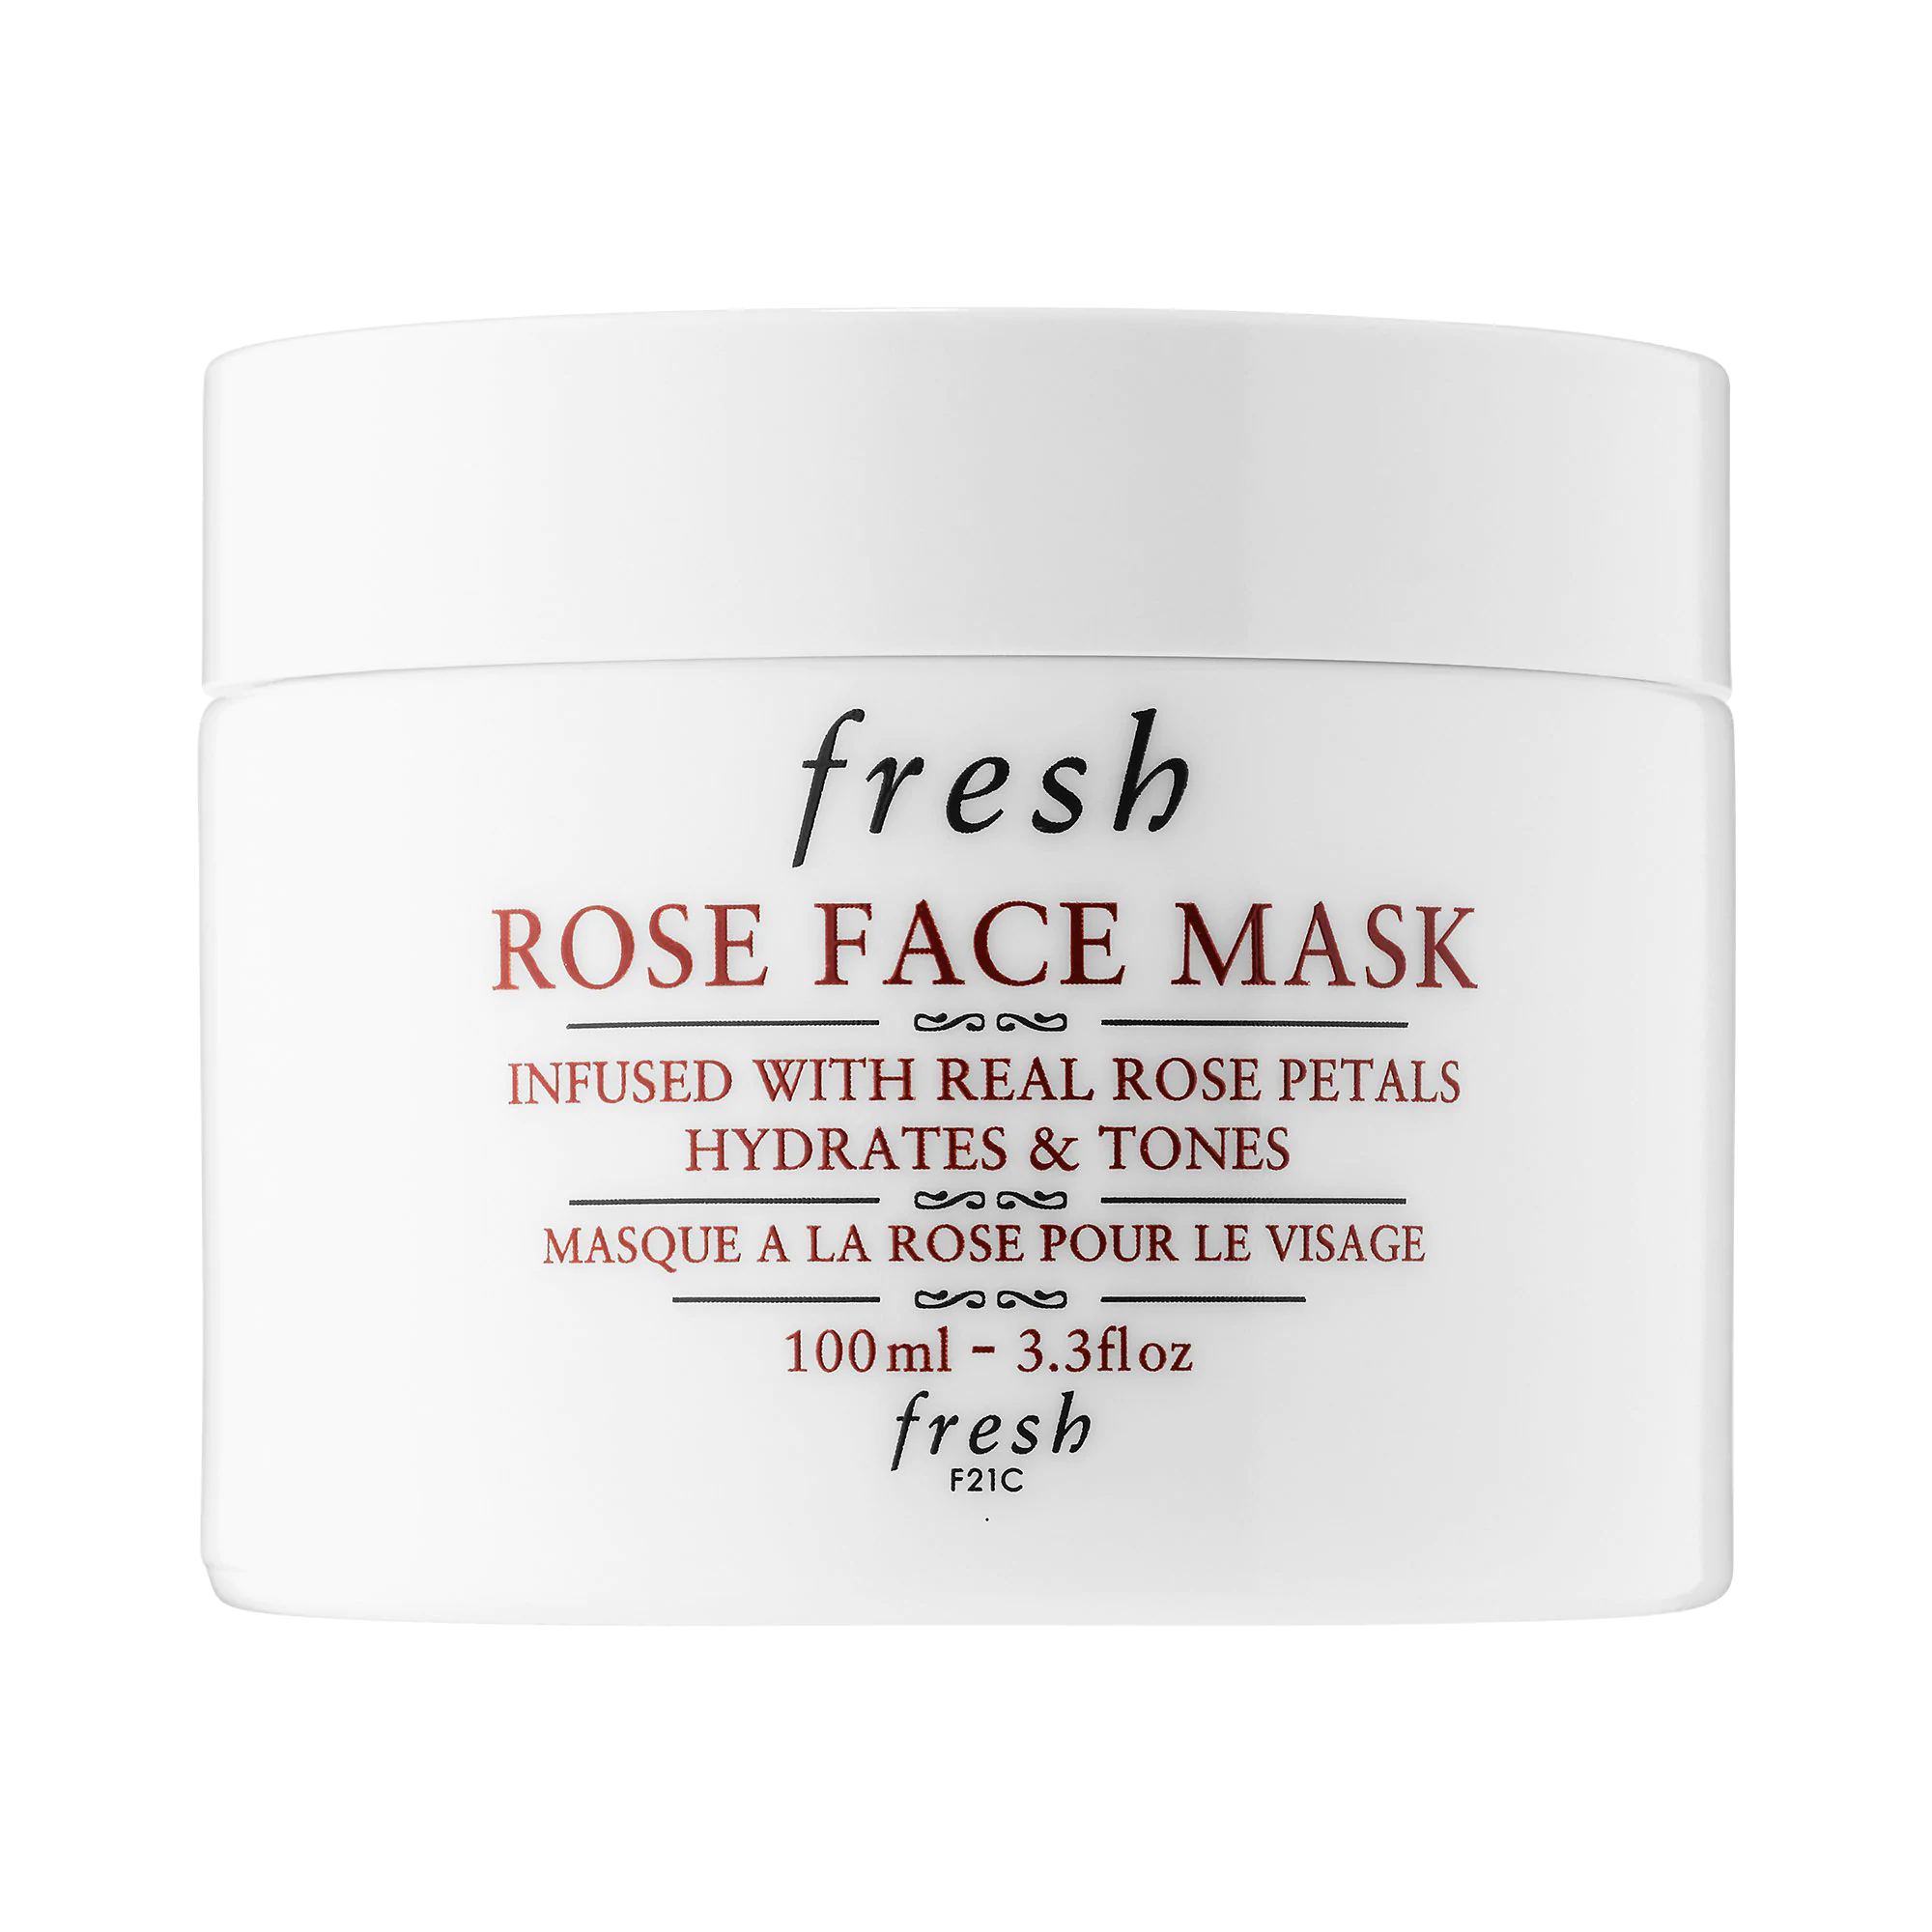 Rose_Face_Mask_from_Fresh_1.png